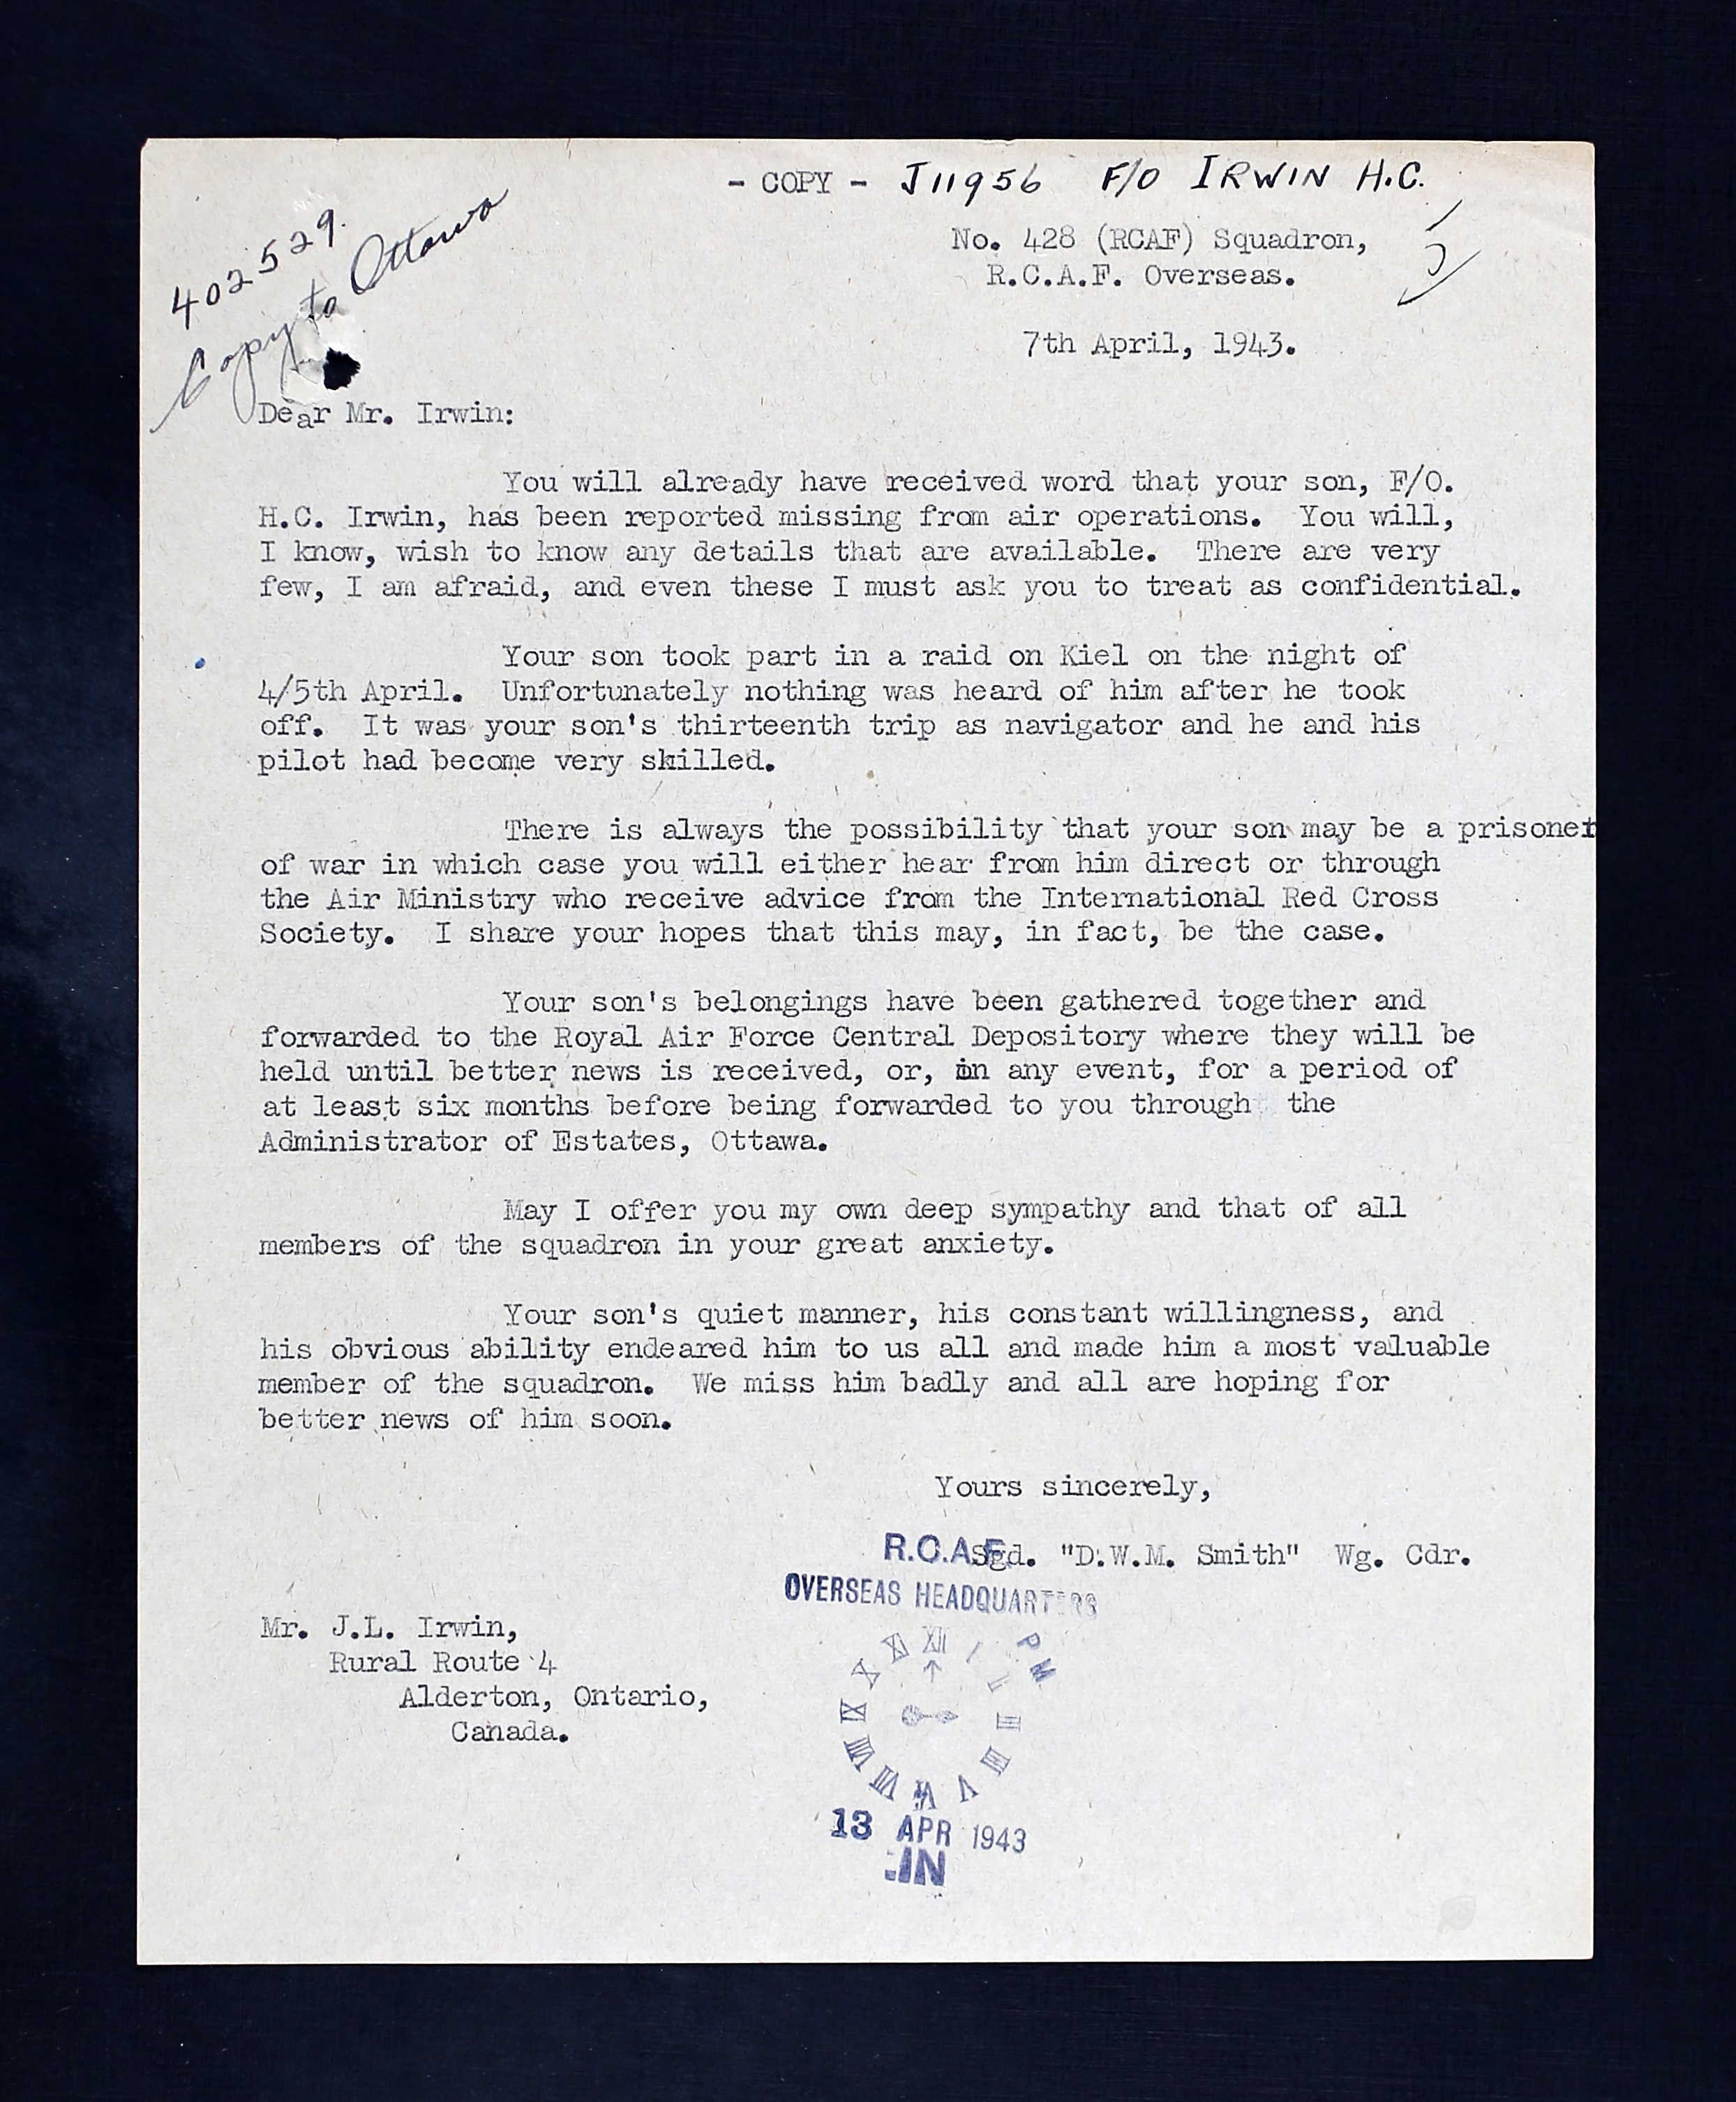 Letter– Letter to F/O Irwin's father from Wing Commander D.W.M. Smith, officer commanding 428 Squadron, dated 7 April 1943.  F/O Irwin's parents and a younger brother lived on the family's farm in the area of Ilderton, Ontario.